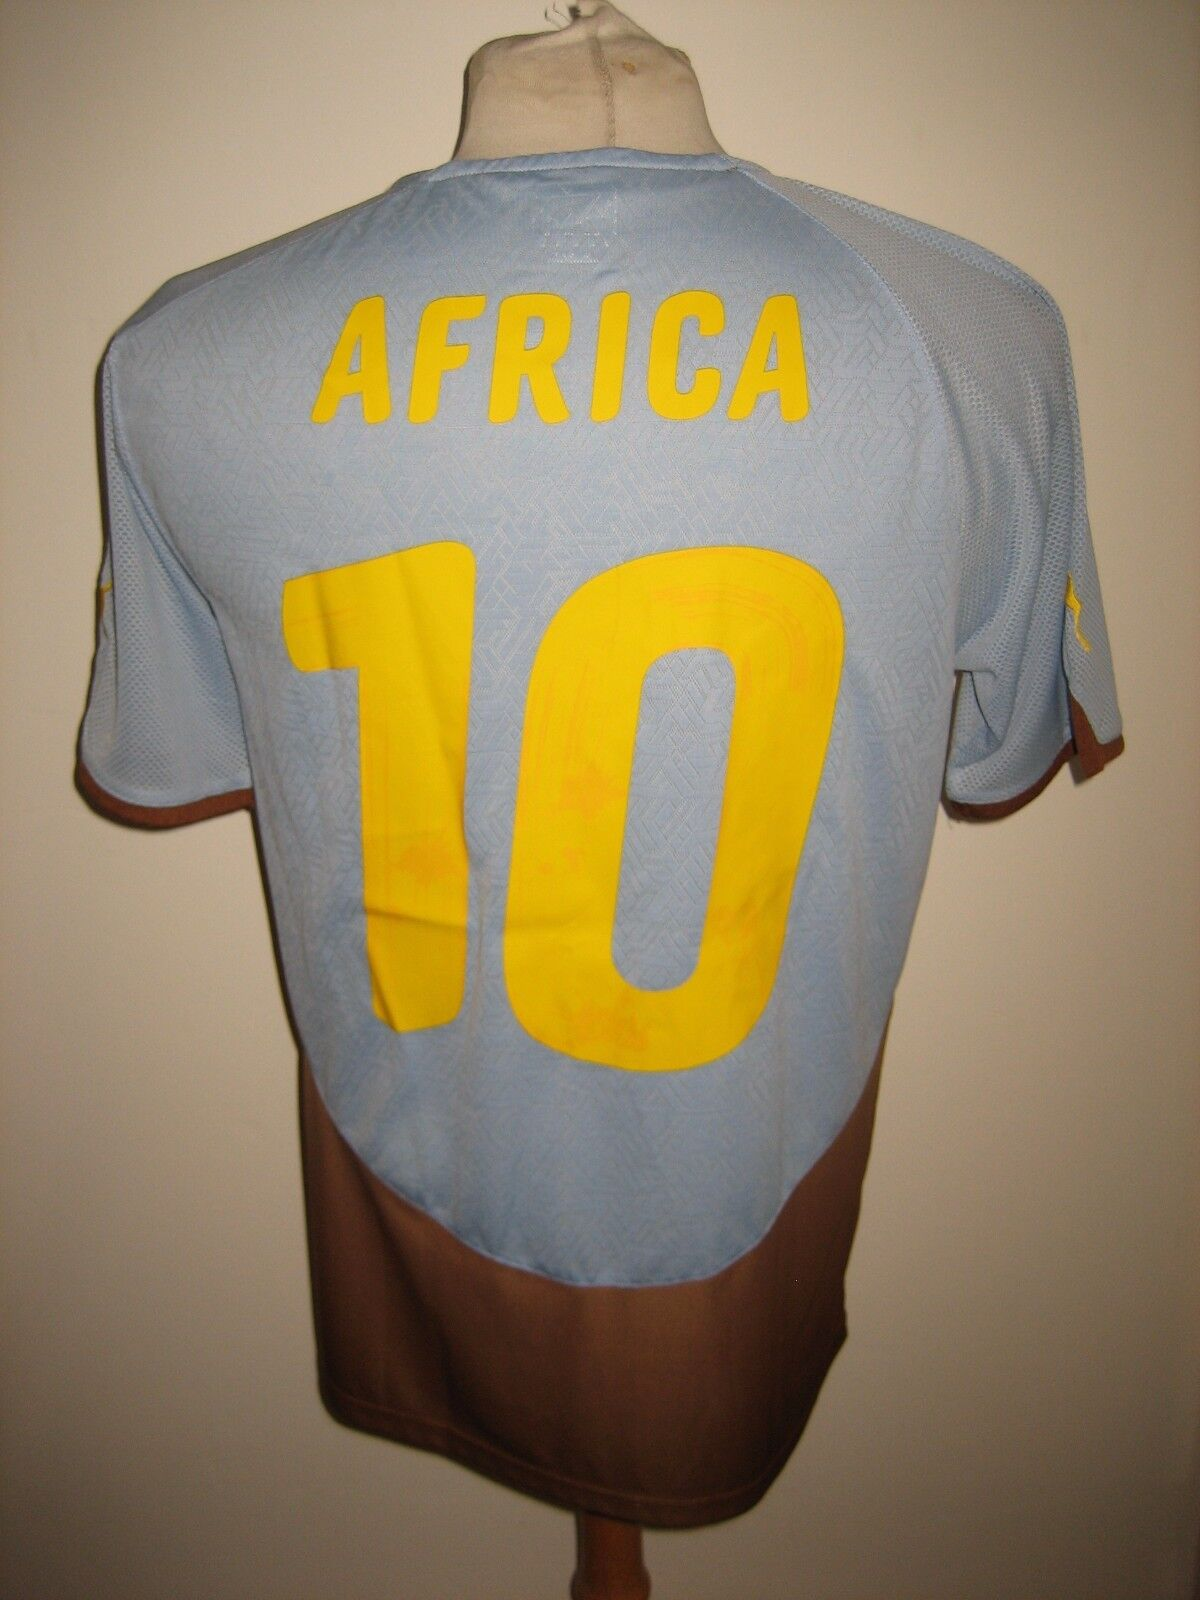 Africa Unity CAF football shirt soccer jersey maillot trikot camiseta size M